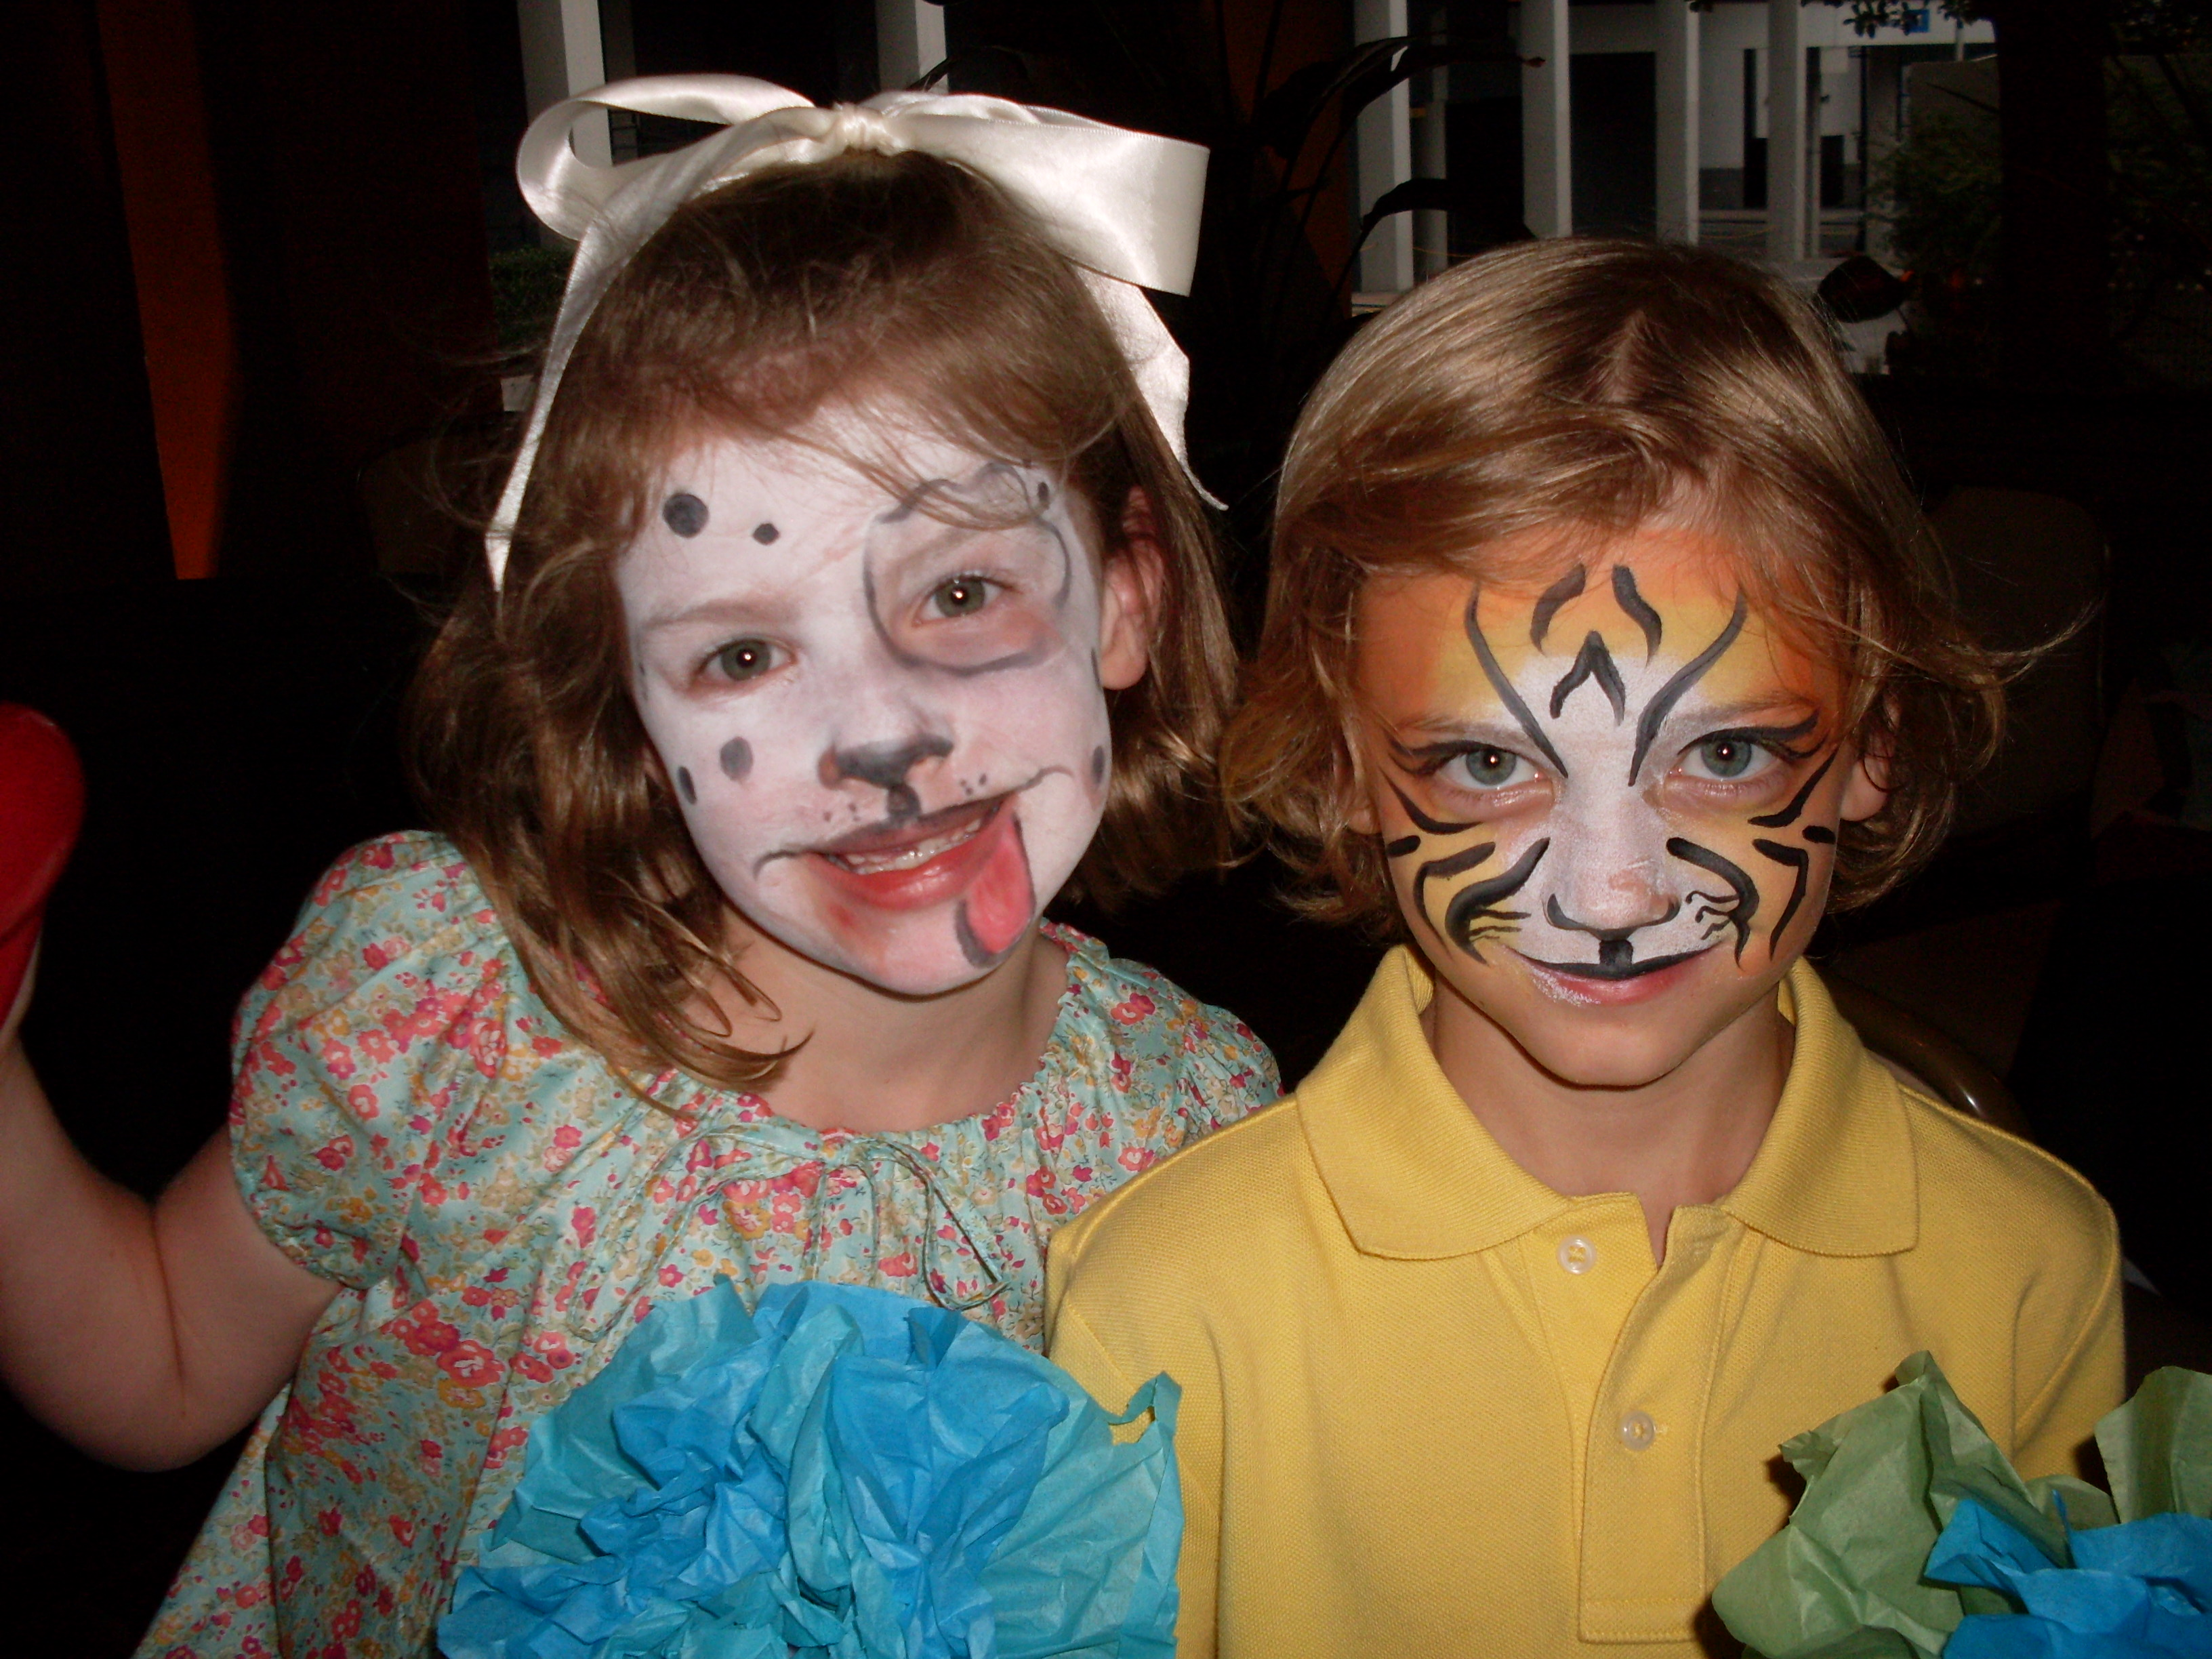 Face painting the alison agency parties atlanta ga for Face painting for parties